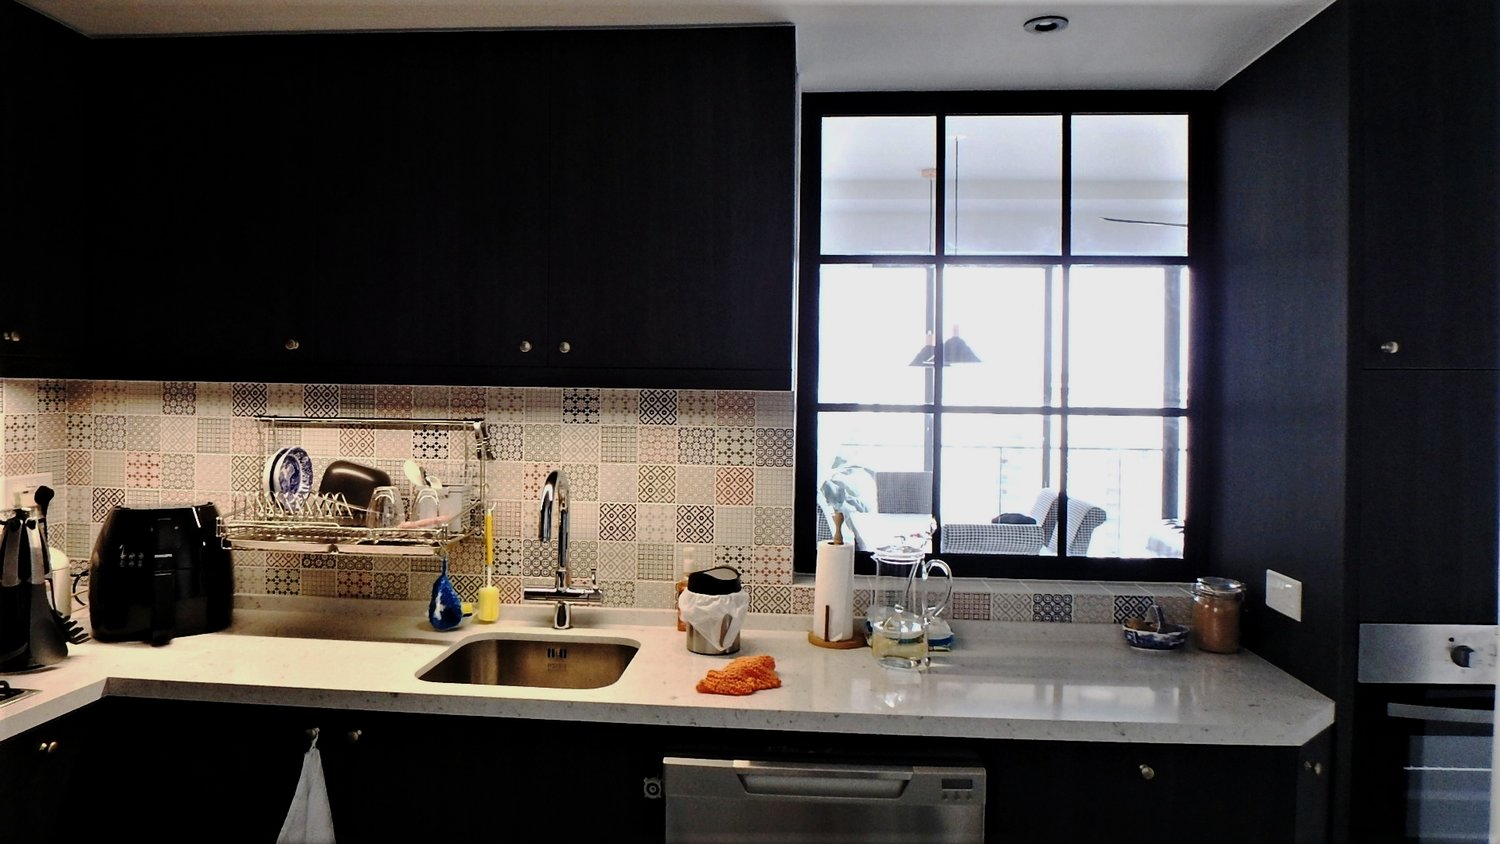 A large window allows more natural lighting into the kitchen while enhancing the transitional colonial look. Quartz counter top for superior durability.